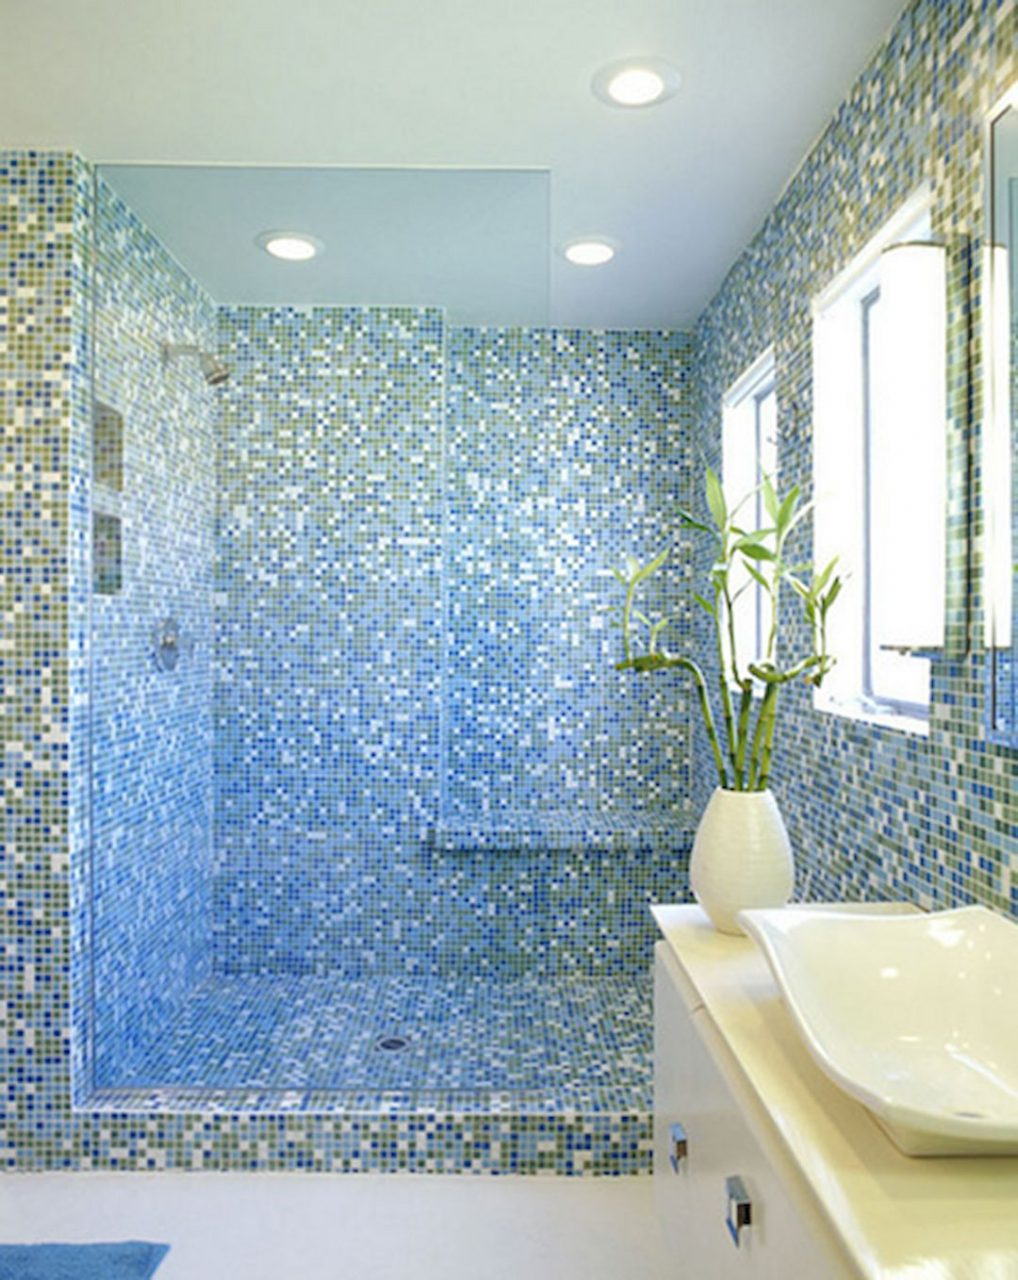 37 Cute Glass Tile Ideas For Bathroom Futurist Architecture Rose Jam